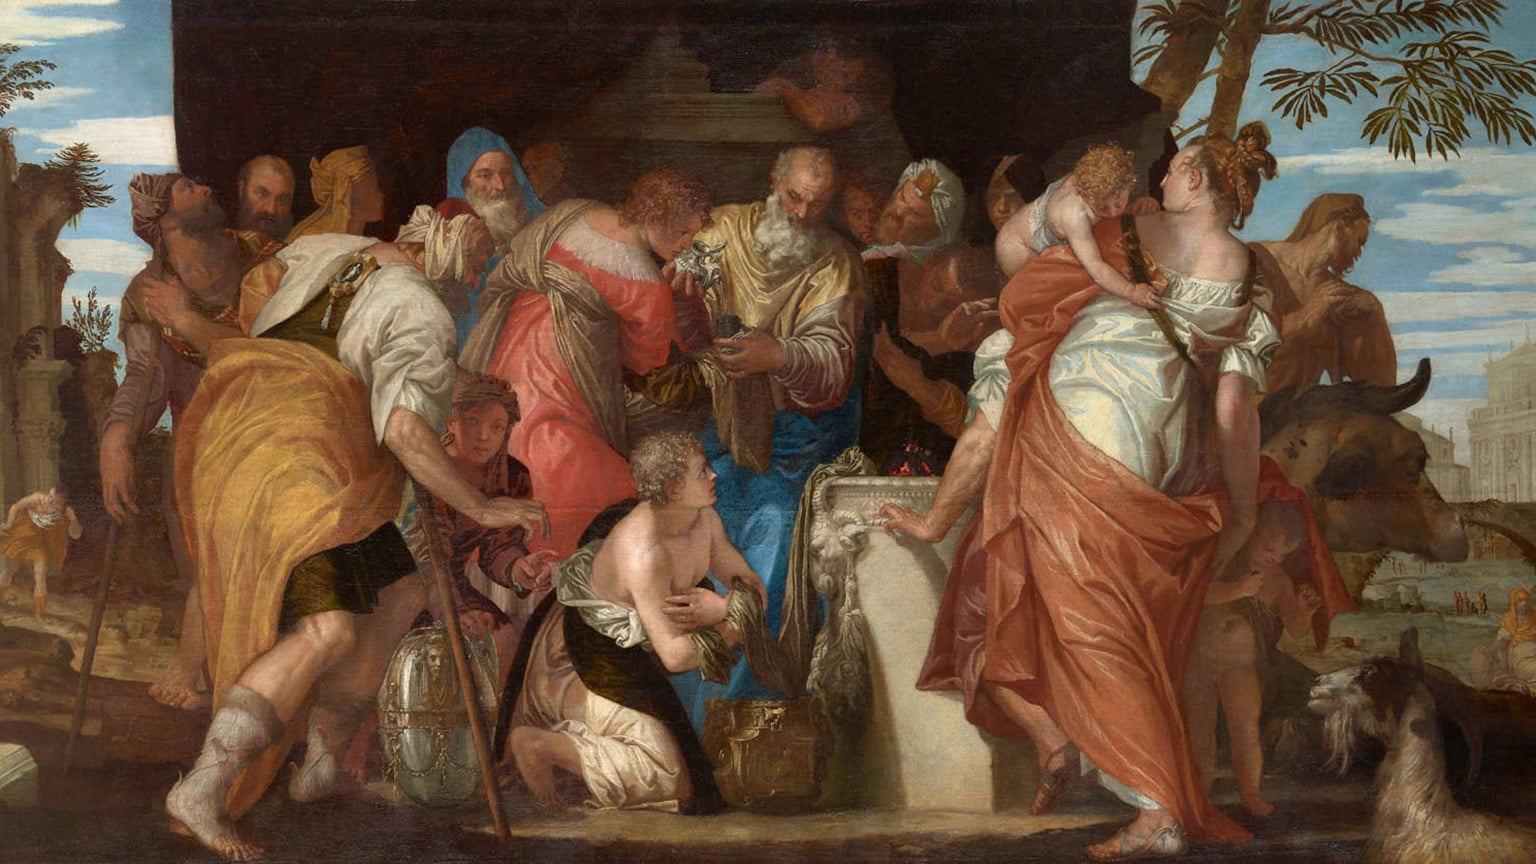 2. Veronese: Magnificence in Renaissance Venice at the National Gallery. 50% off with National Art Pass - Paolo Veronese, The Anointment of David, about 1550. Kunsthistorisches Museum, Vienna © KHM, Vienna